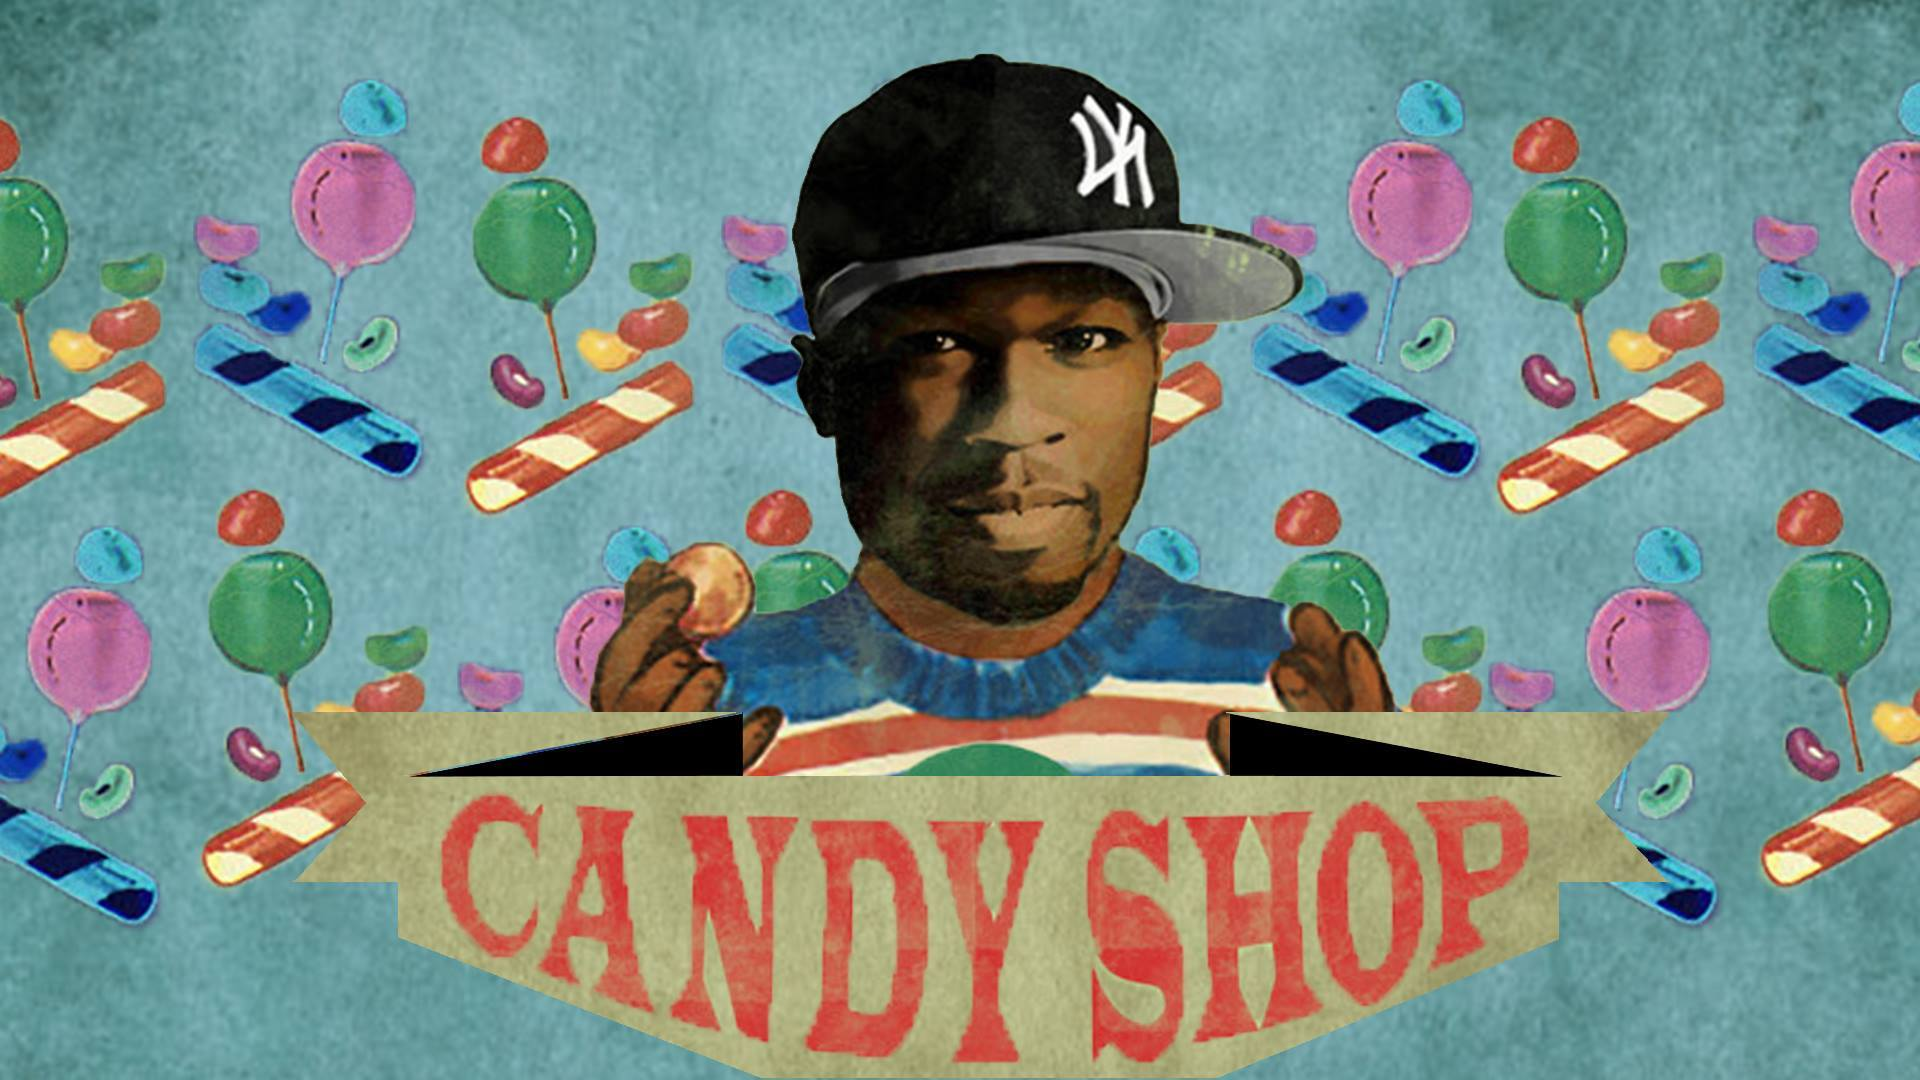 """Imagine going to a candy shop where they play all your favourite tunes and all the sweets are free. This is what Candy Shop club night is all about bringing you the best of both worlds!    There will be a MASSIVE candy giveaway: lollipops, candy canes , Haribo , ice lollies and a lot more!    We will be playing anything from 50 Cent, Jay-Z, Drake, Rihanna, Nelly, Usher, Destiny's Child , TLC, Chris Brown, Tyga, R.Kelly , Ginuwine, DMX , Ludacris , Dr Dre , Snoop Dogg, Stormzy , Skepta, Travi$ Scott , A$AP Rocky, Fetty Wap, Lil Wayne , Pusha T, Meek Mill, Rich Homie Quan plus a lot of Throwback anthems in your ears.    """"Go shawty its your birthday""""- If its your birthday the same week as Candy Shop you get a free entry for you and 2 friends.    """"You can have it your way how do you want it""""?- Let us know your song requests!    Get your names down on the event wall for £3 entry before 11:00pm otherwise it's £5 all night"""